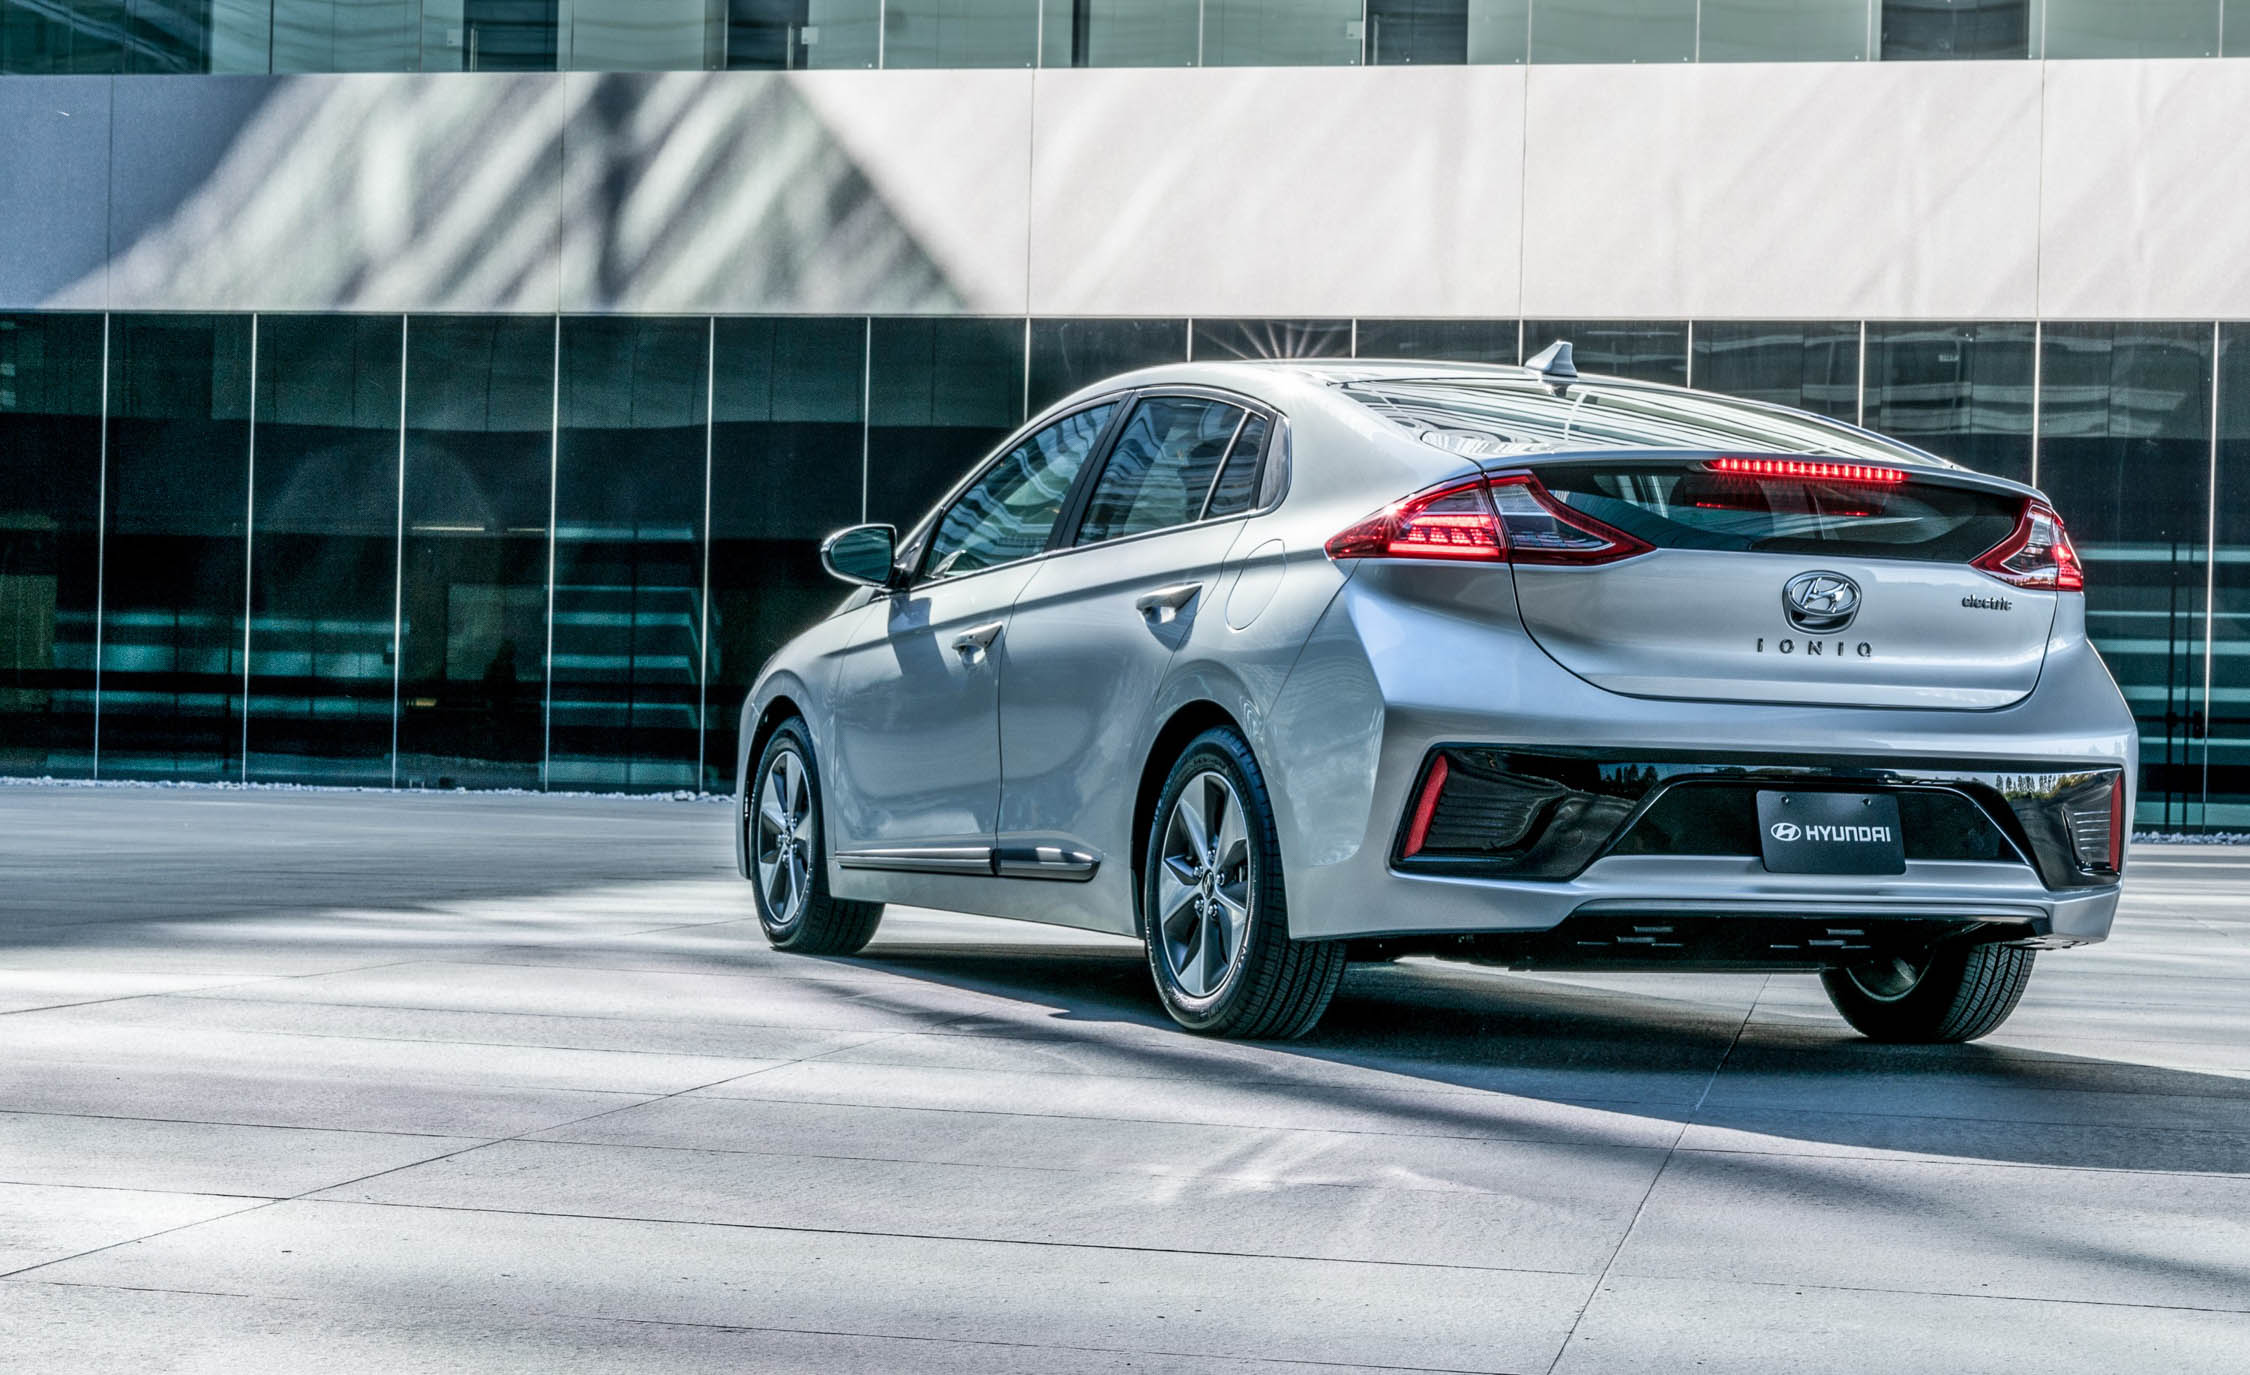 2017 Hyundai Ioniq Electric Exterior Rear And Side (Photo 5 of 67)